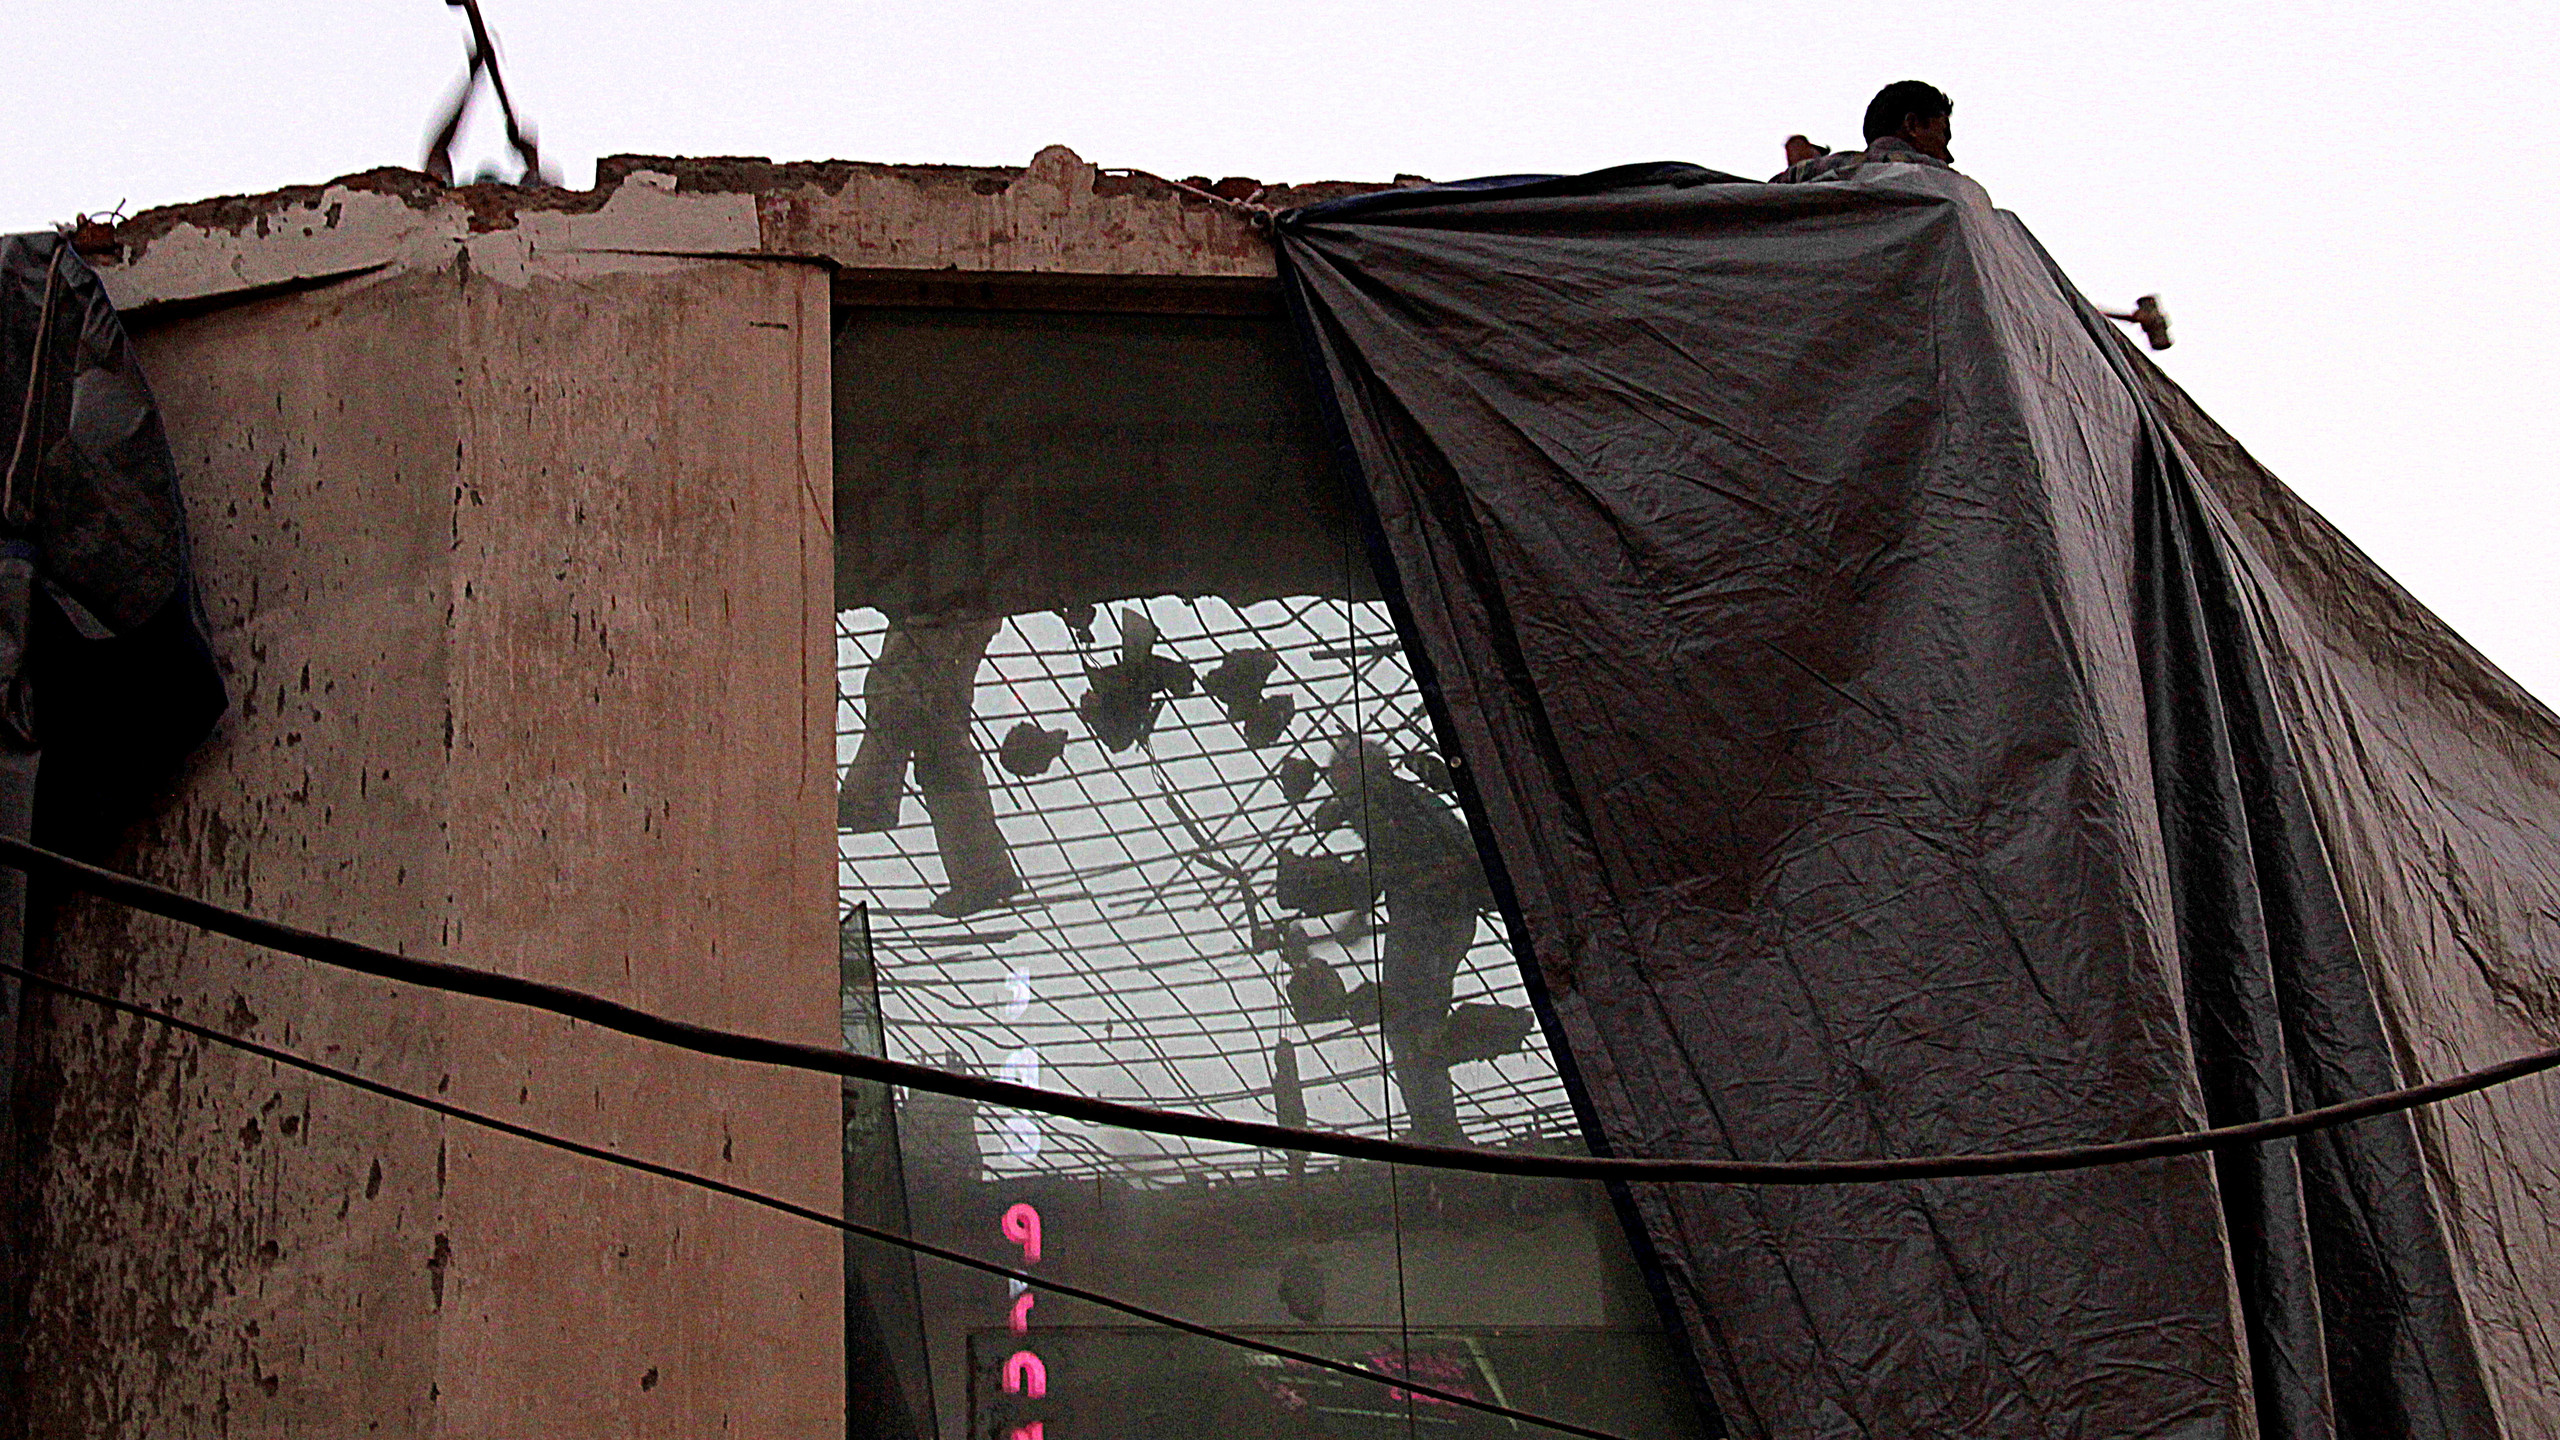 Workers break down an old home as a dust storm approaches South Delhi. The new building will house a café and a French bar